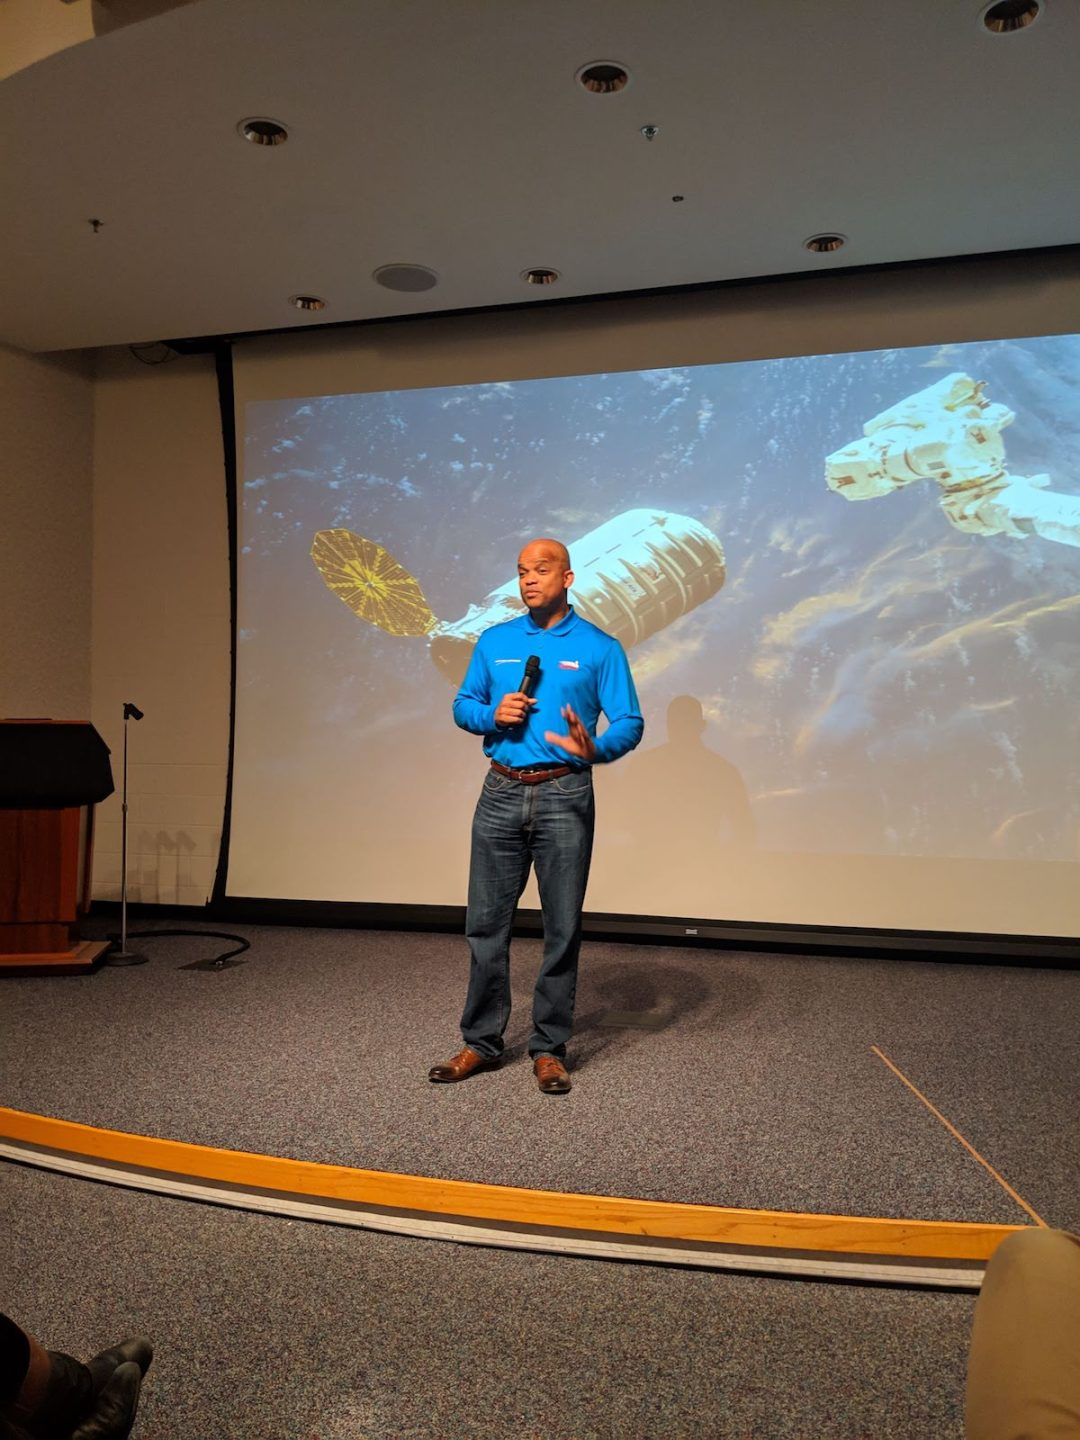 A photo of Astronaut Robert Curbeam talking to the group about the NG-11 mission.